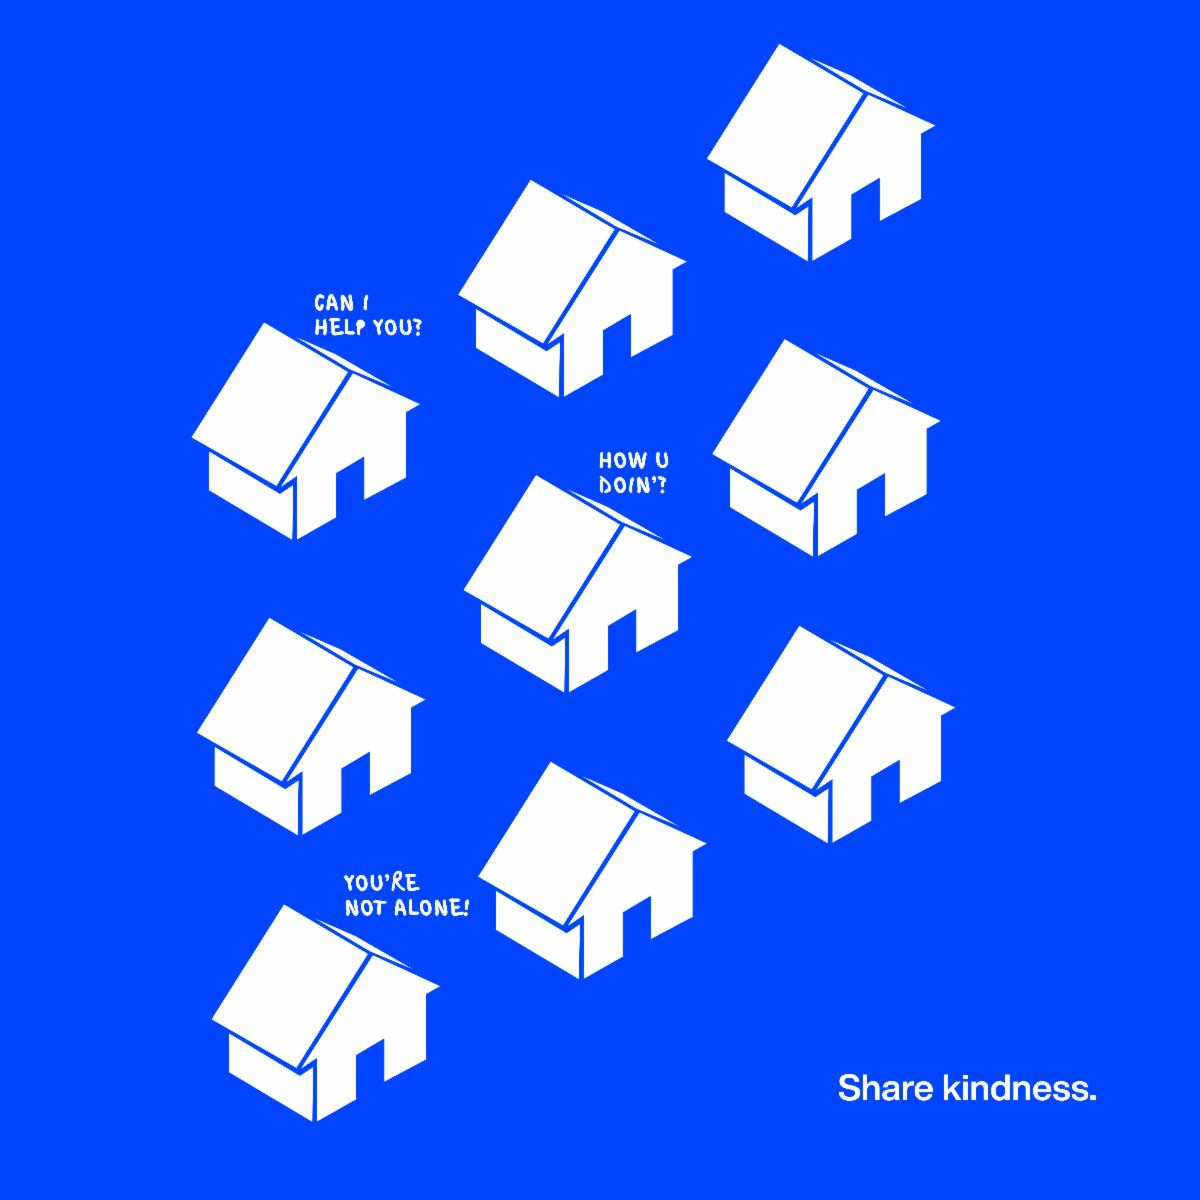 White houses checking in with question on a blue background with the phrase Share Kindness in the bottom right